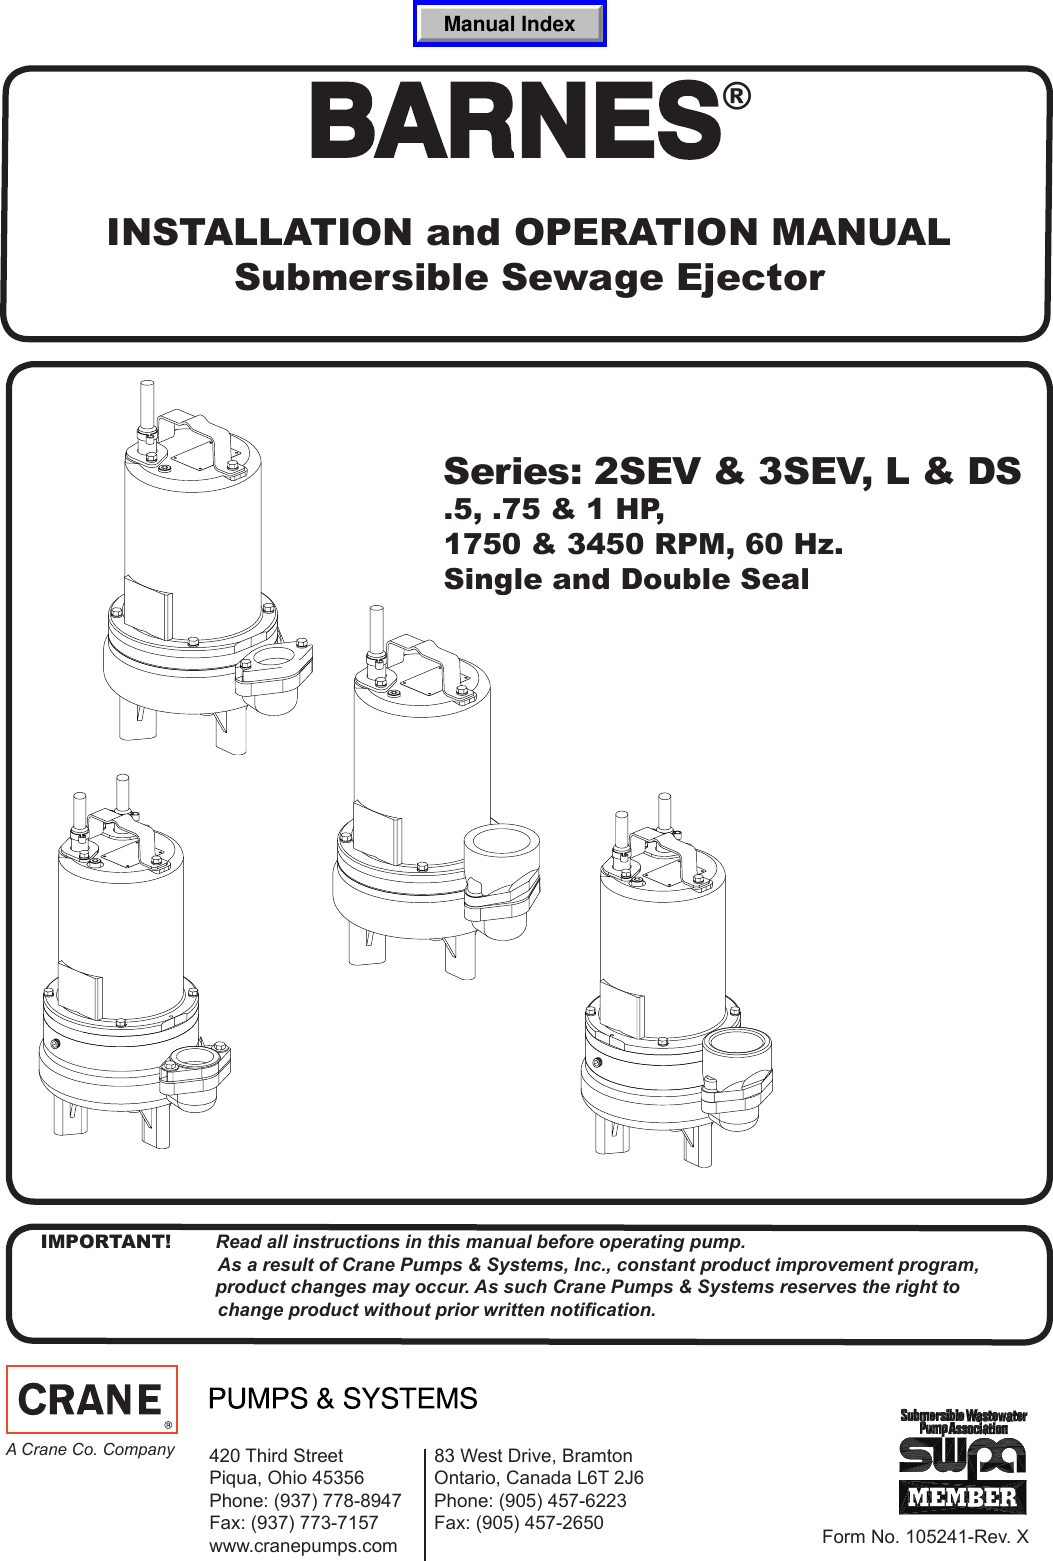 Why Does My Septic System Has Separate On And Off Float Manual Guide